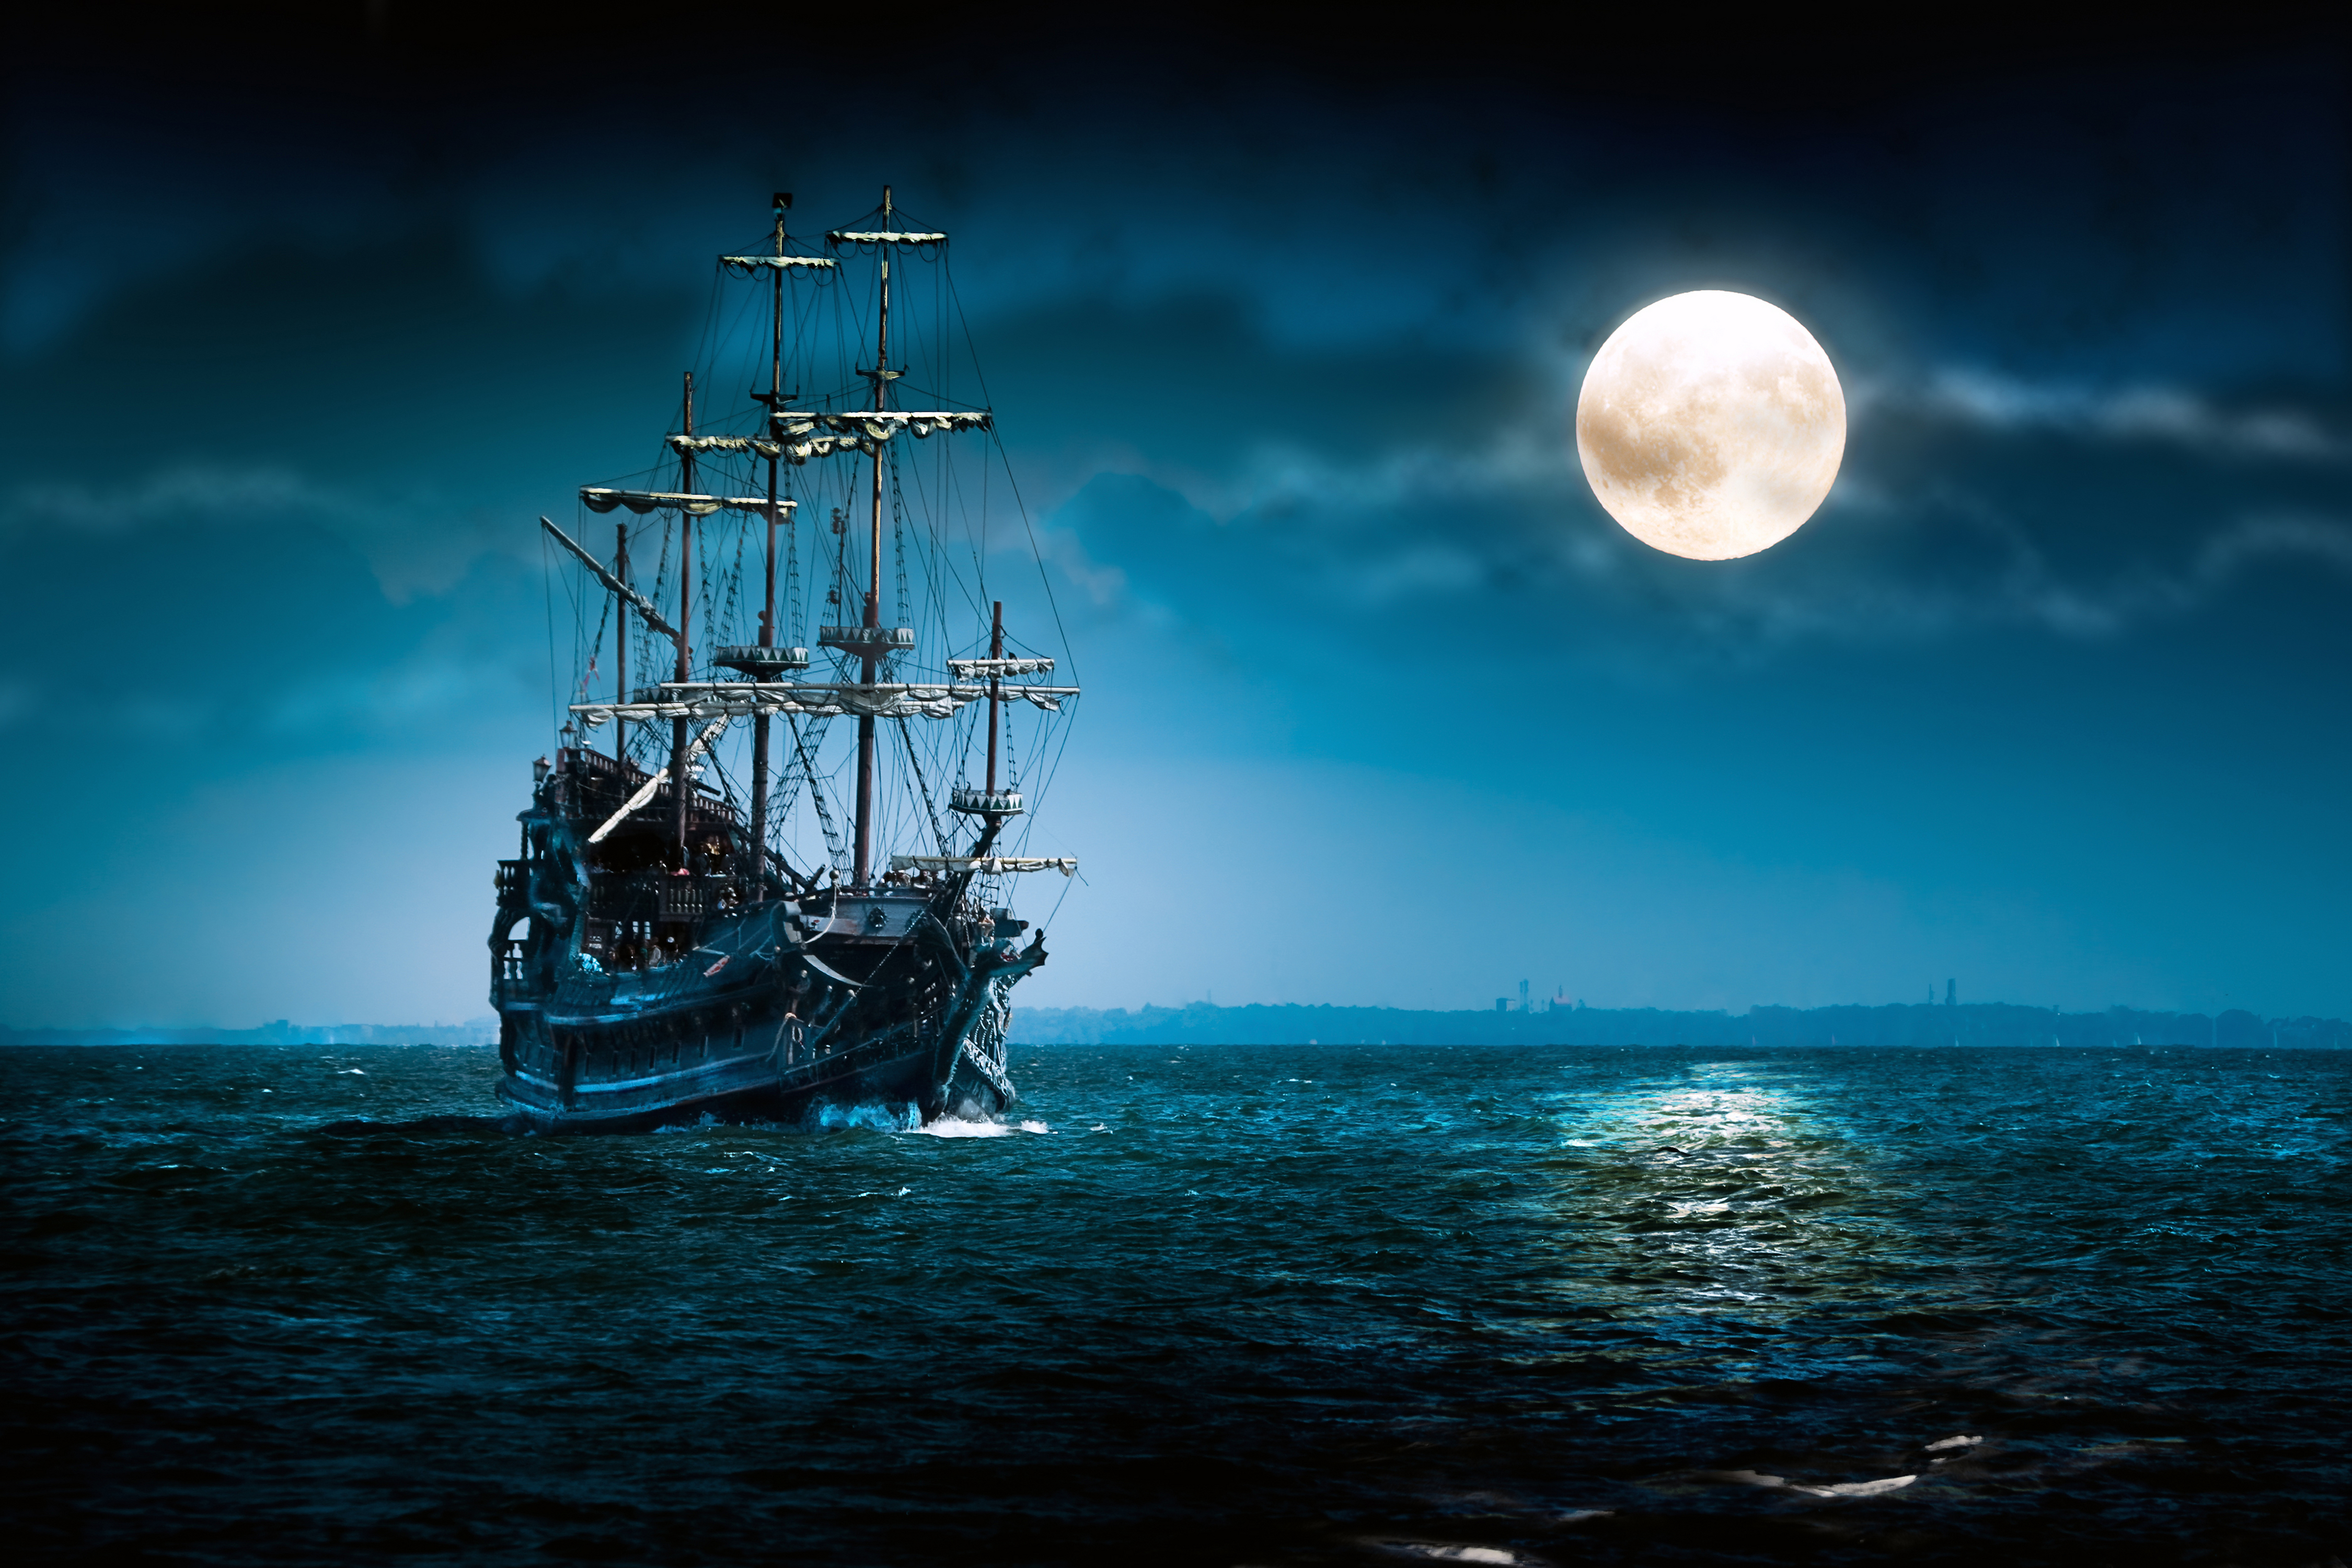 Fantasy   Ship   Night   Moon   Sky   Ocean   Coastline   S